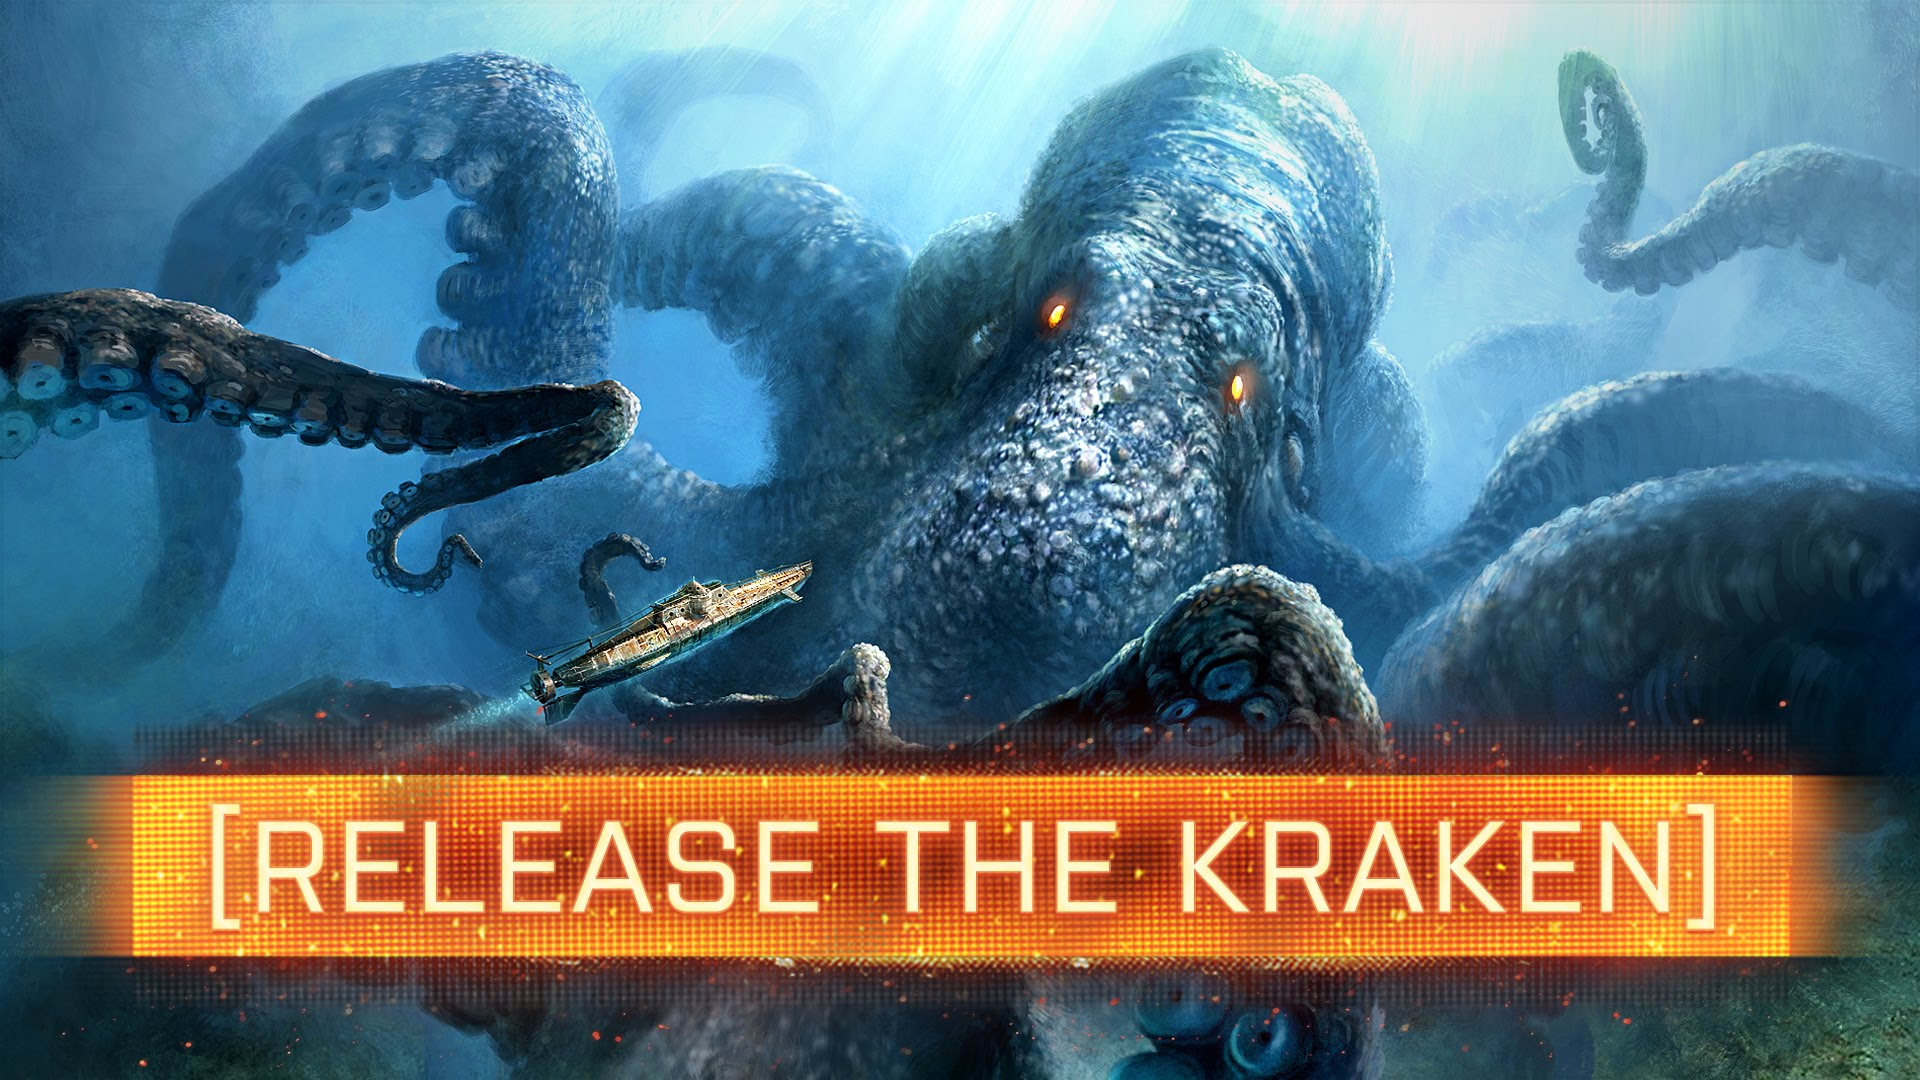 Battlefield 4 Paracal Storm kraken mystery: what we know ...